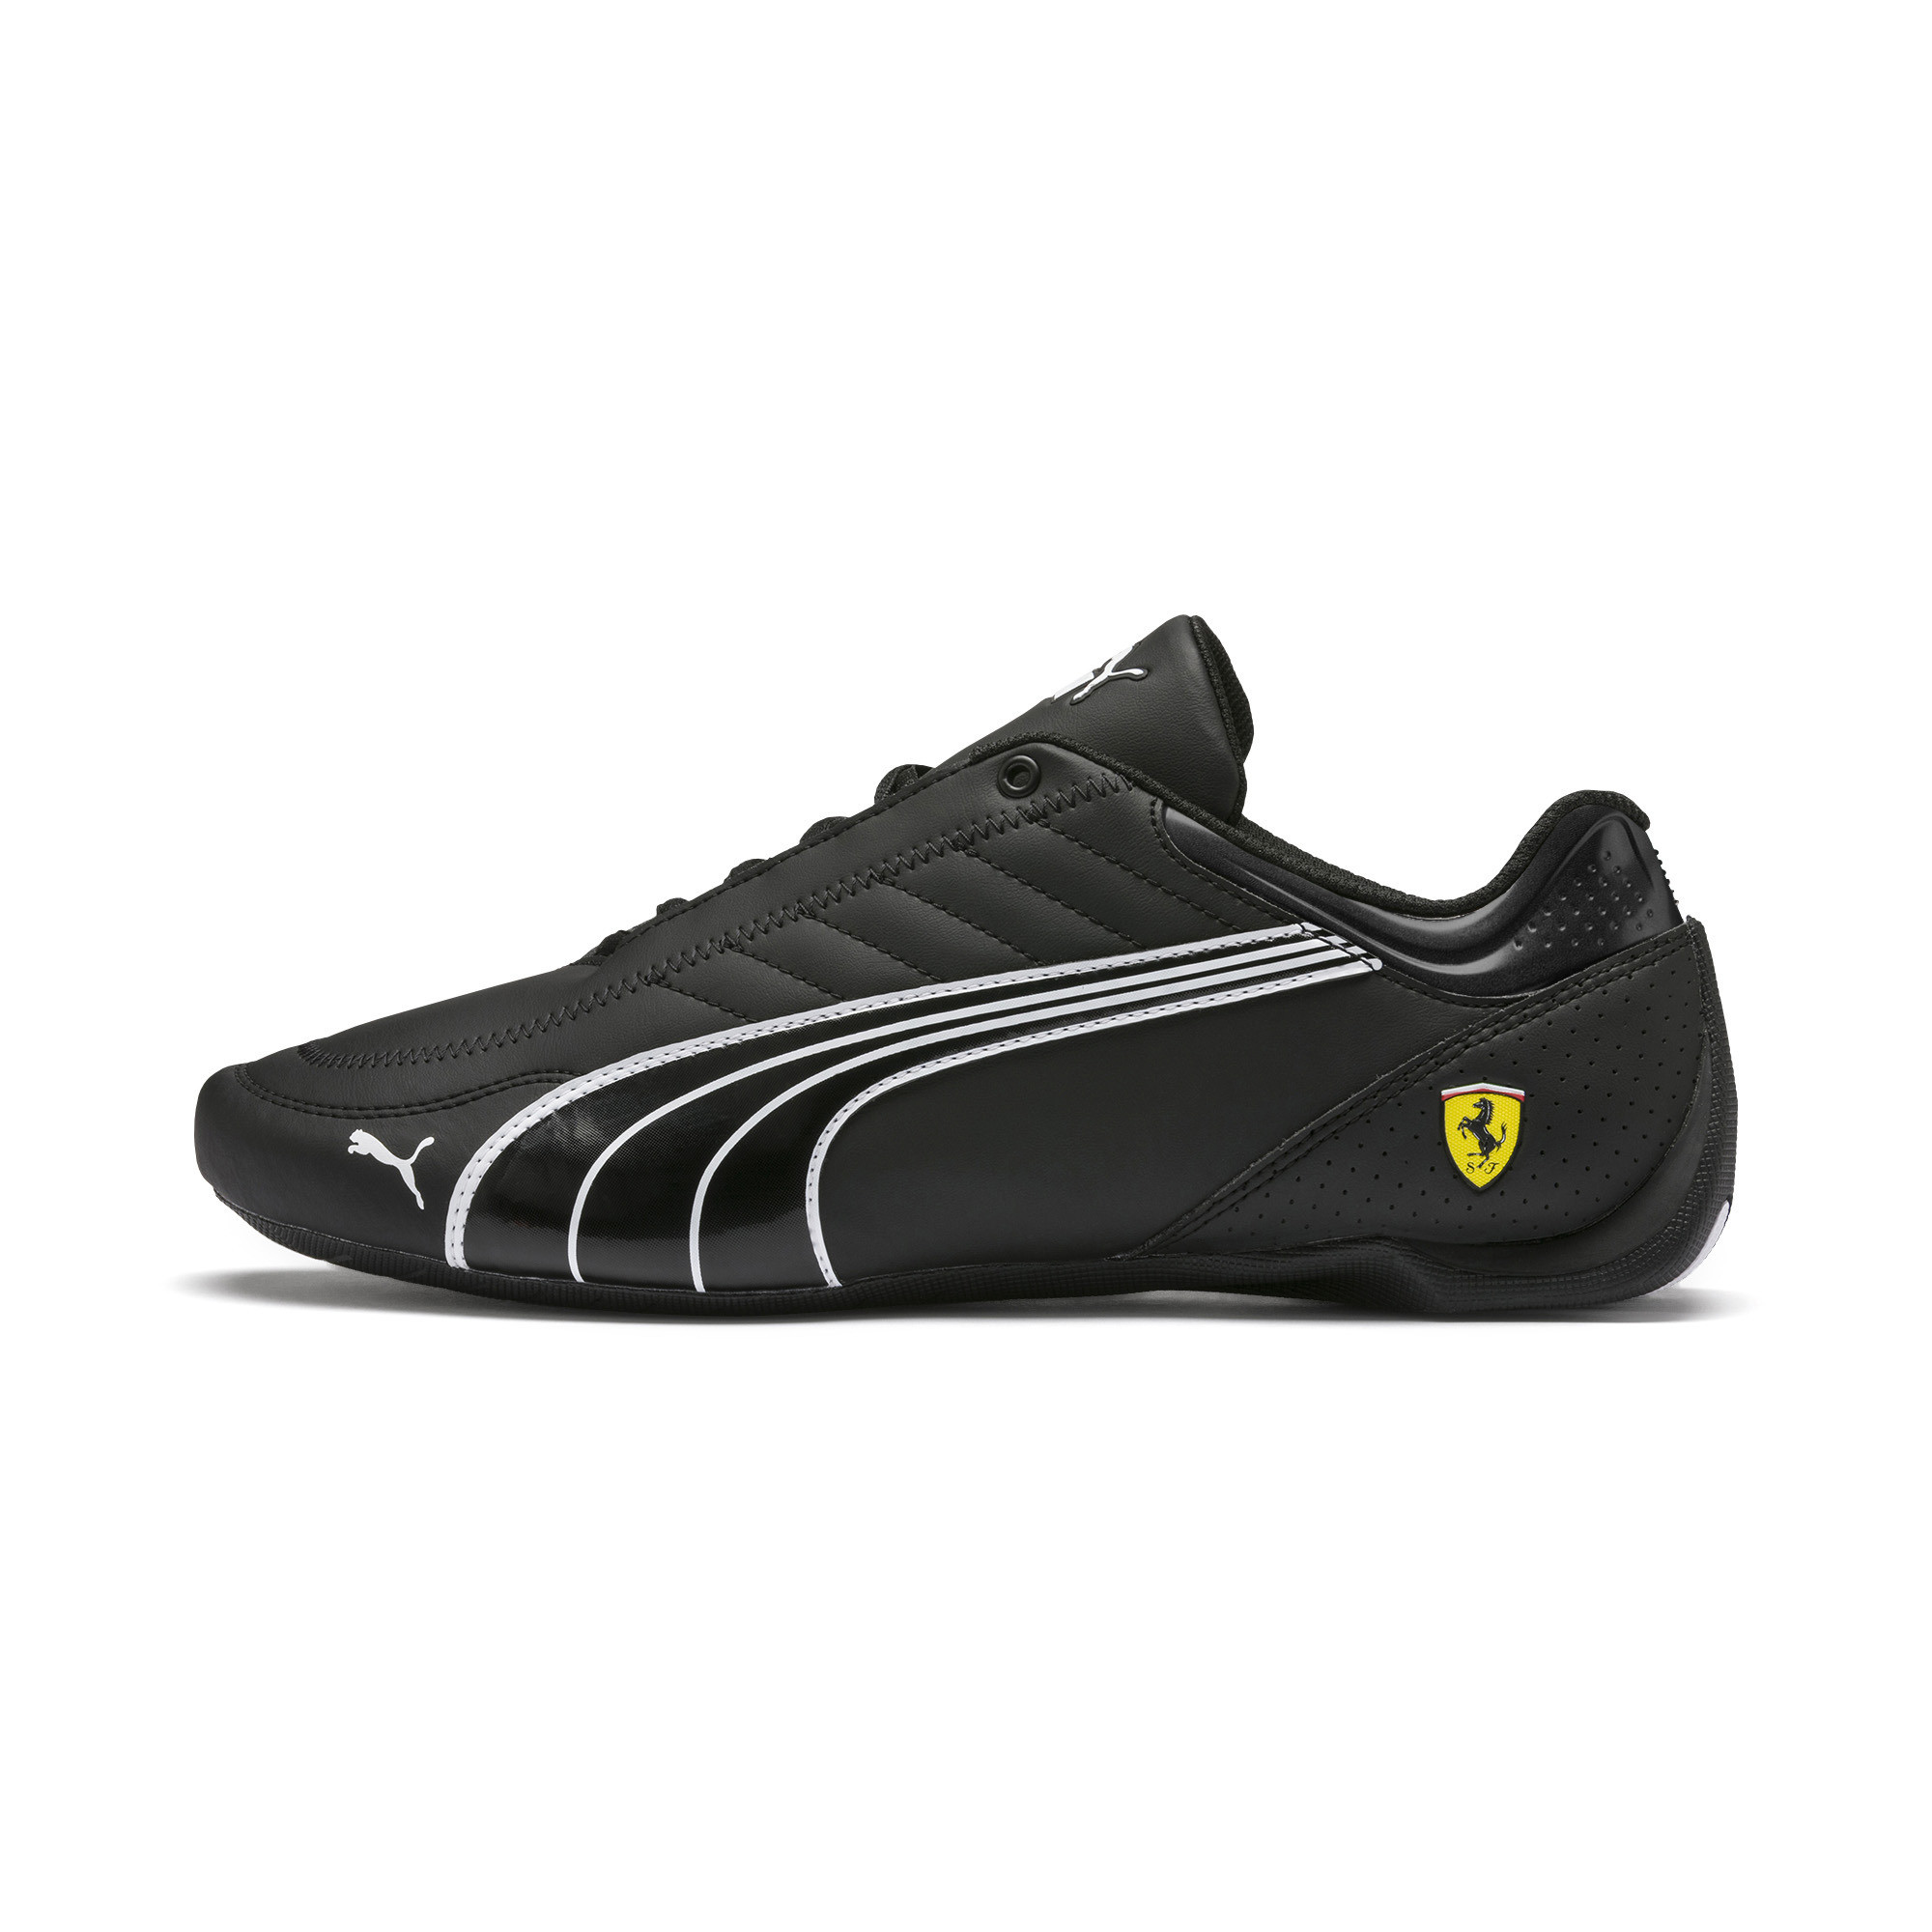 PUMA-Scuderia-Ferrari-Future-Kart-Cat-Men-039-s-Shoes-Men-Shoe-Auto thumbnail 4